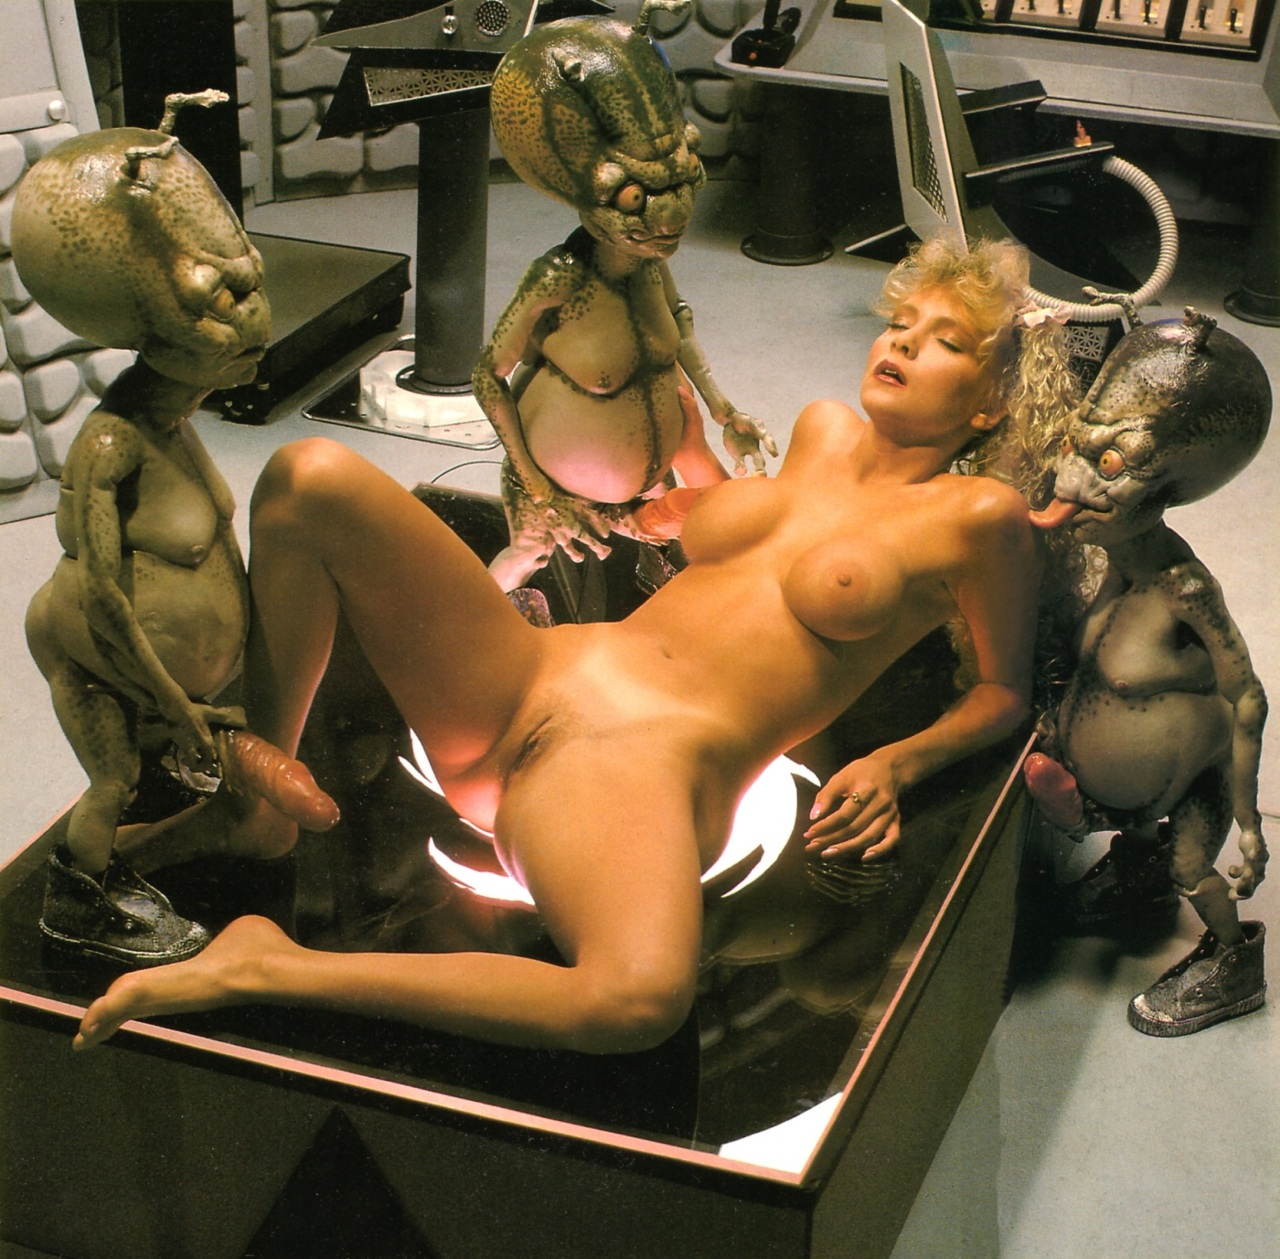 Alien woman porn picture erotic streaming